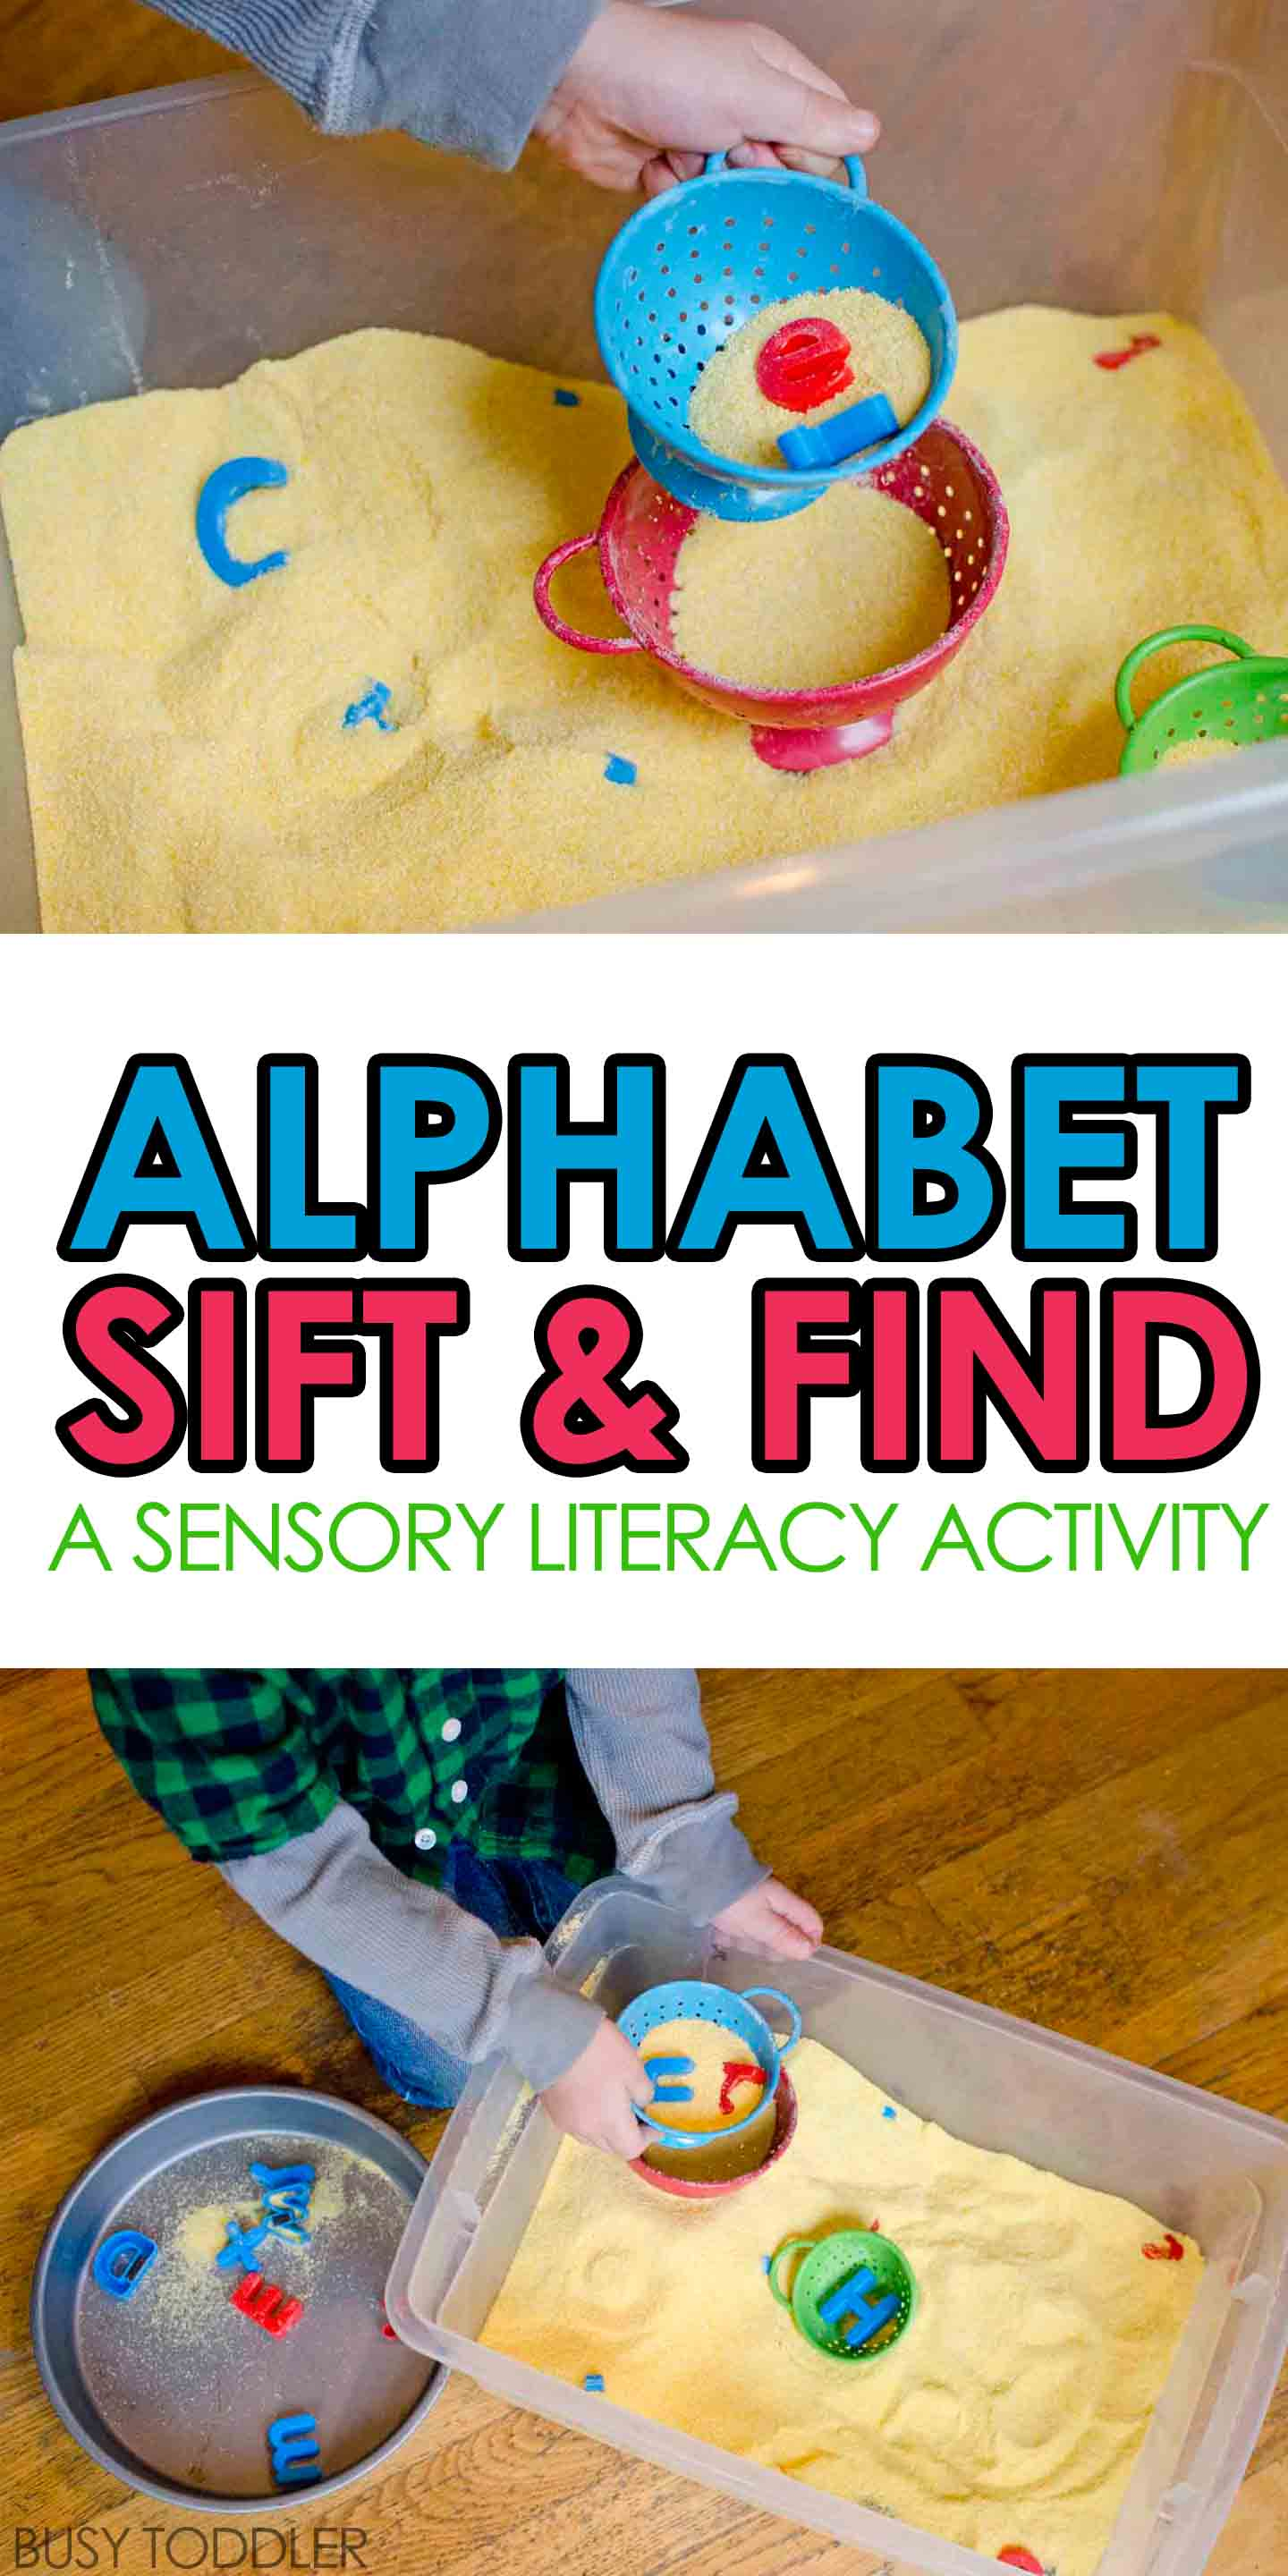 What a fun toddler activity! Alphabet sift and find is the perfect combination of literacy and sensory fun for toddlers and preschoolers. They will love playing this quick and easy indoor activity!